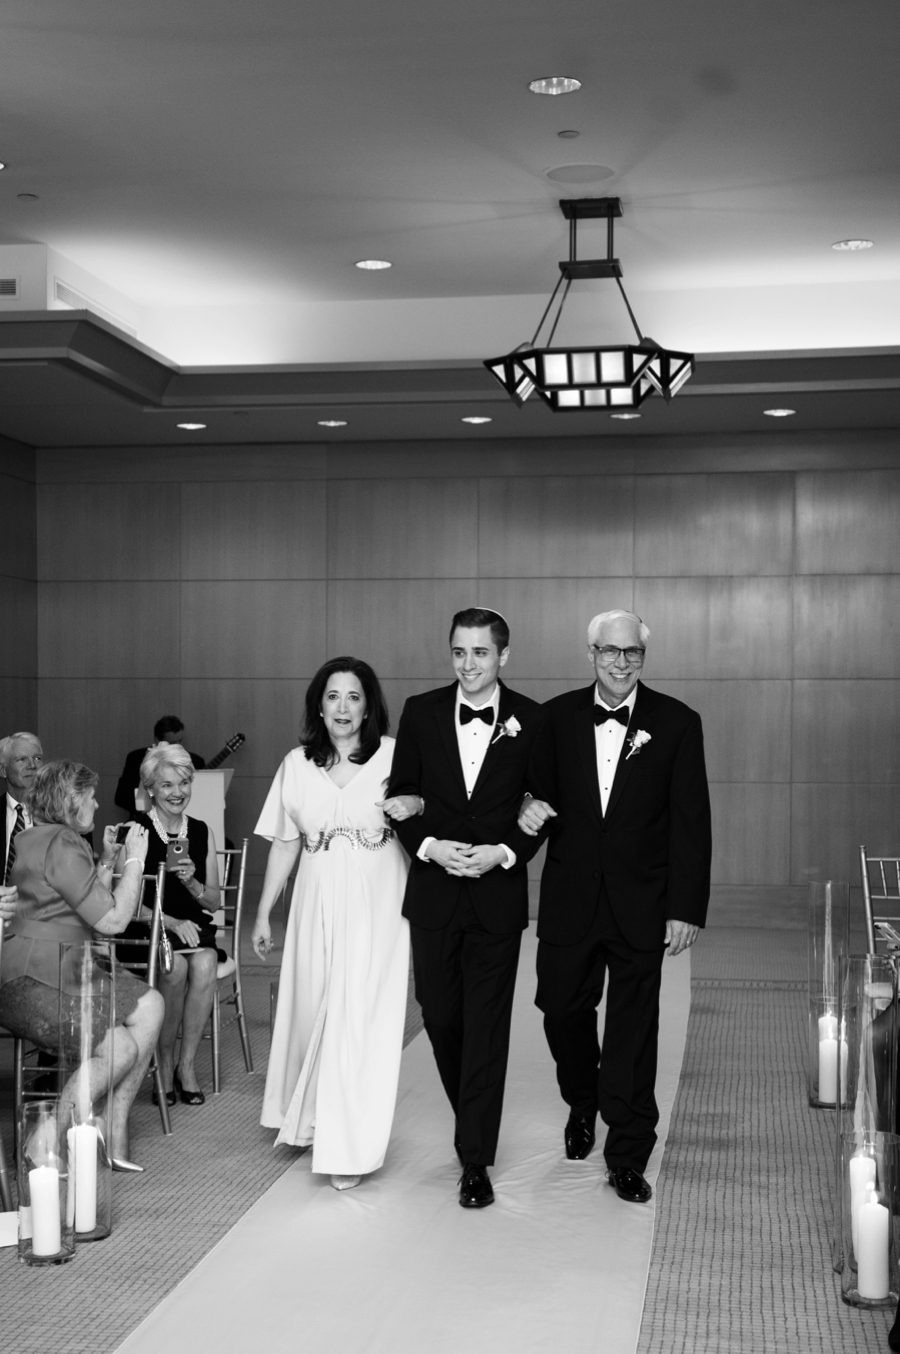 KR_FOUR_SEASONS_NYC_WEDDING_021.jpg